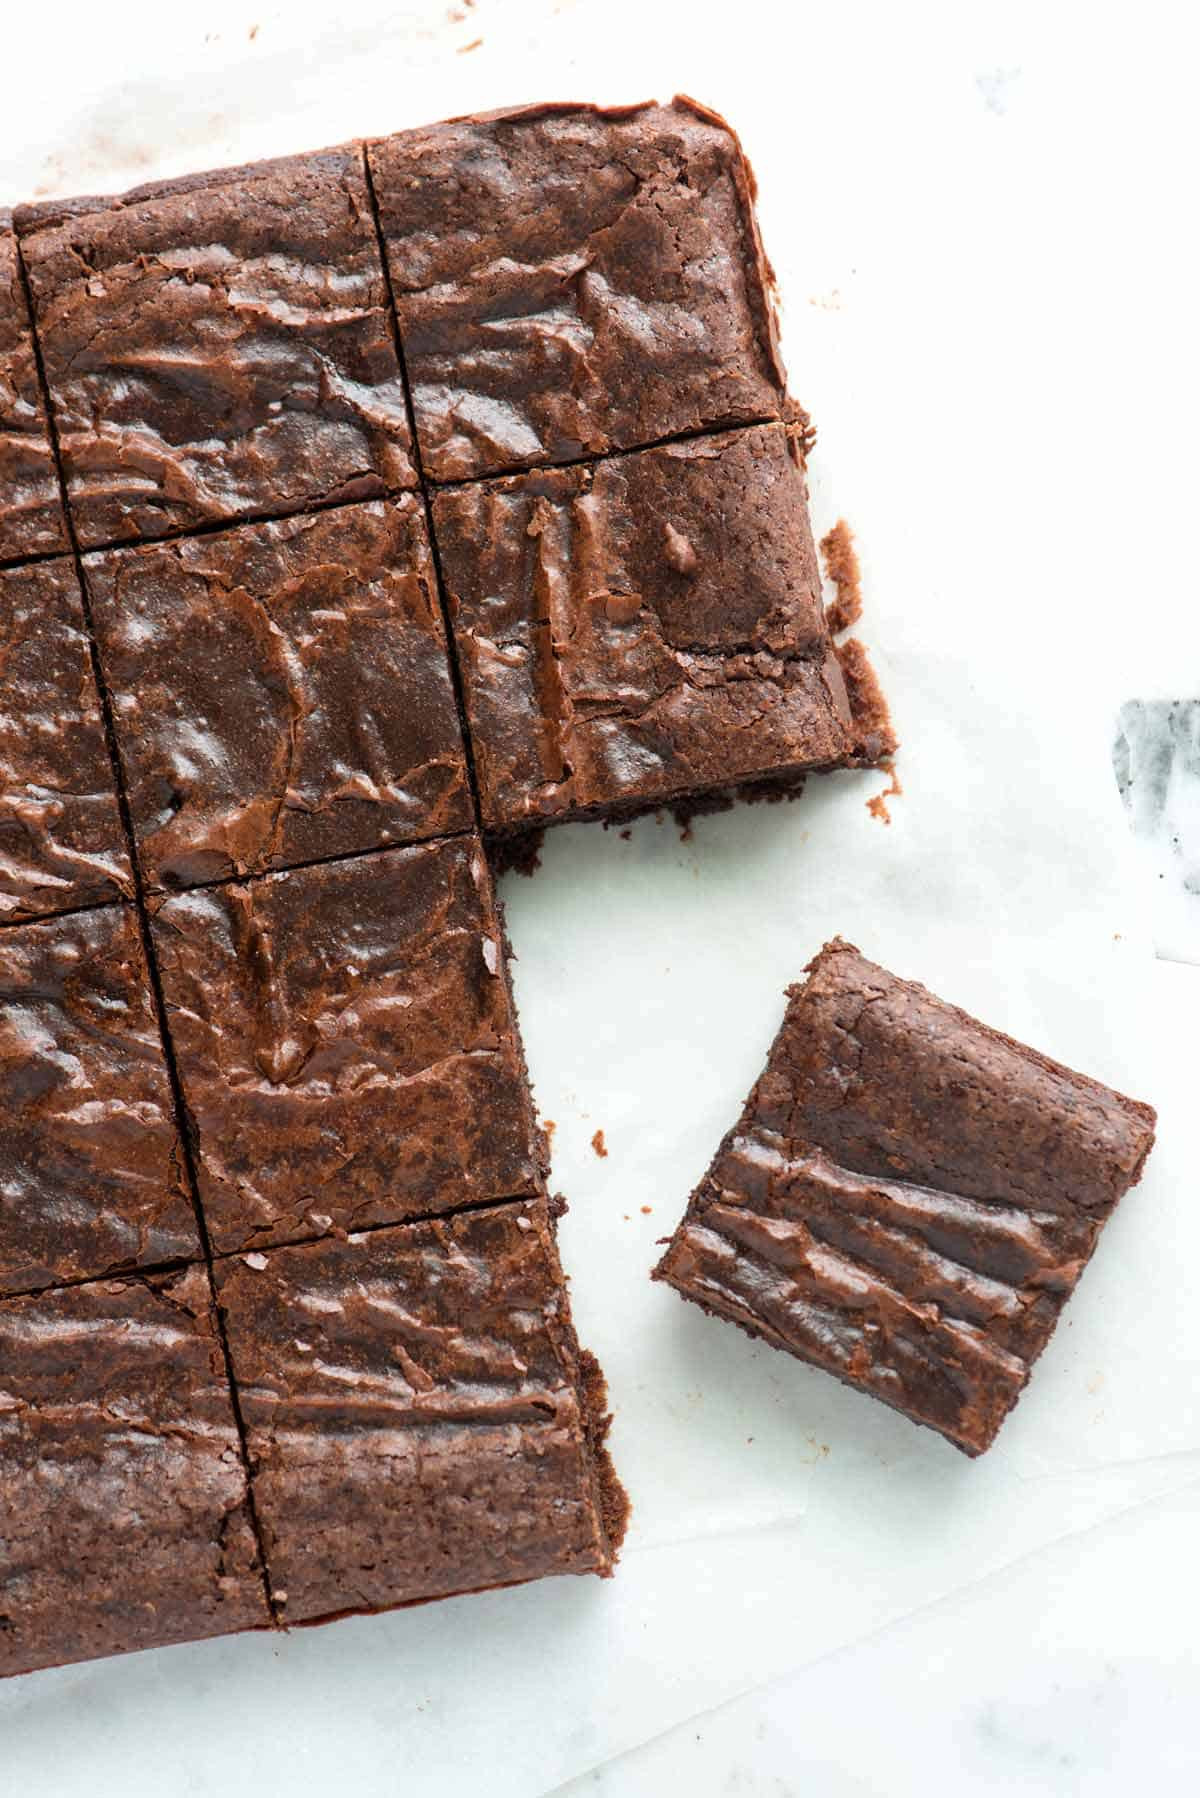 Homemade Chocolate Brownies  Easy Fudgy Brownies Recipe – Better Than The Box